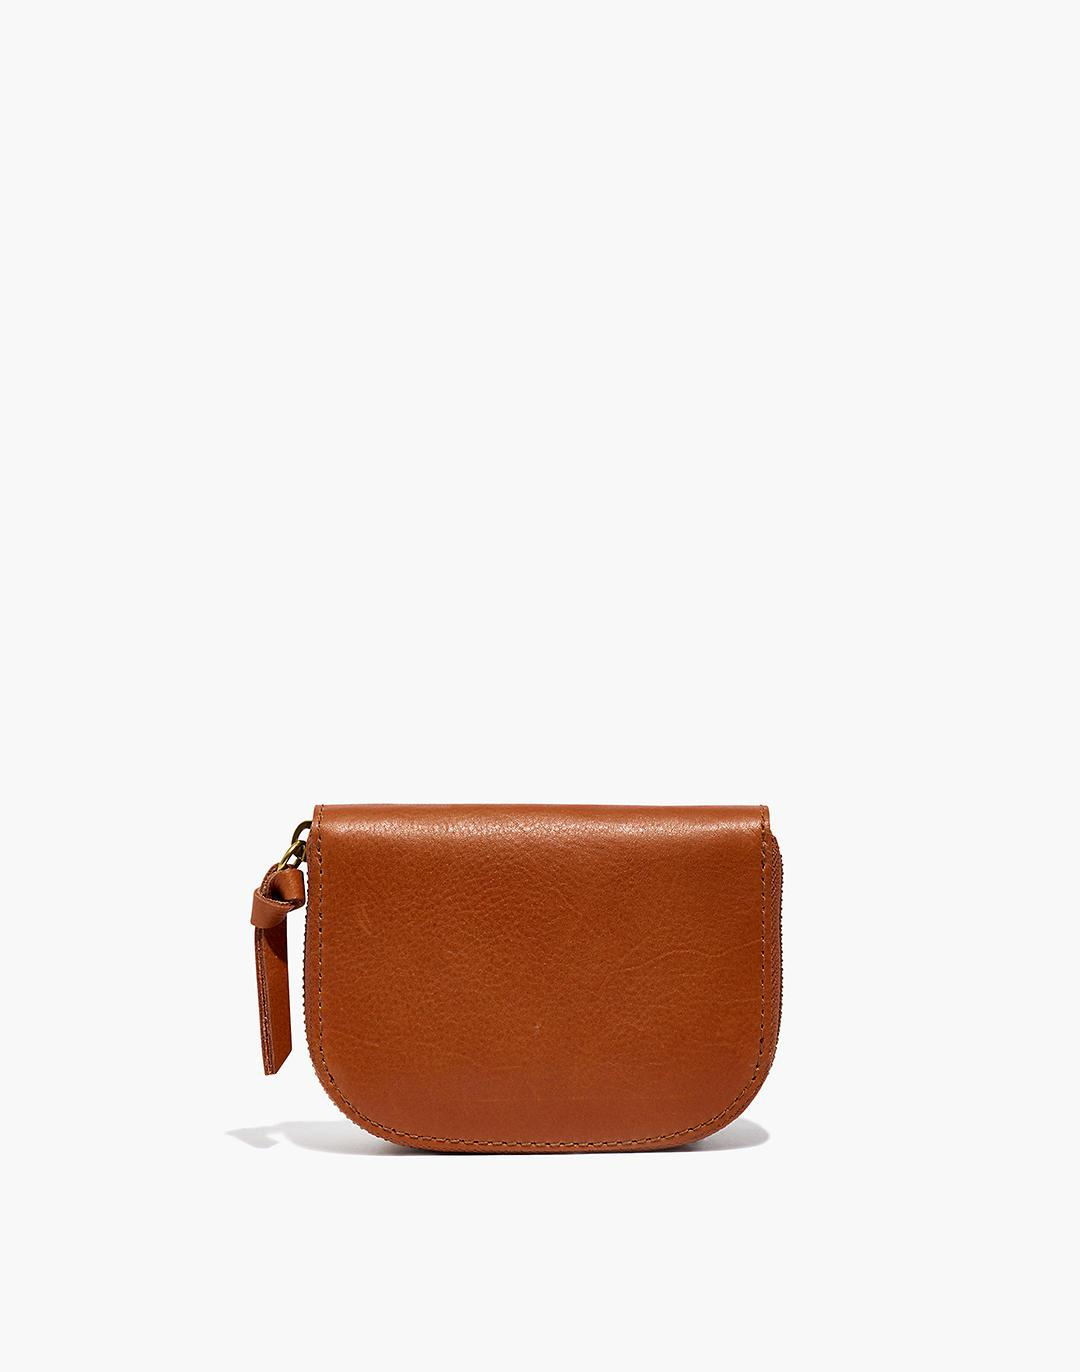 The Zip Wallet in Leather